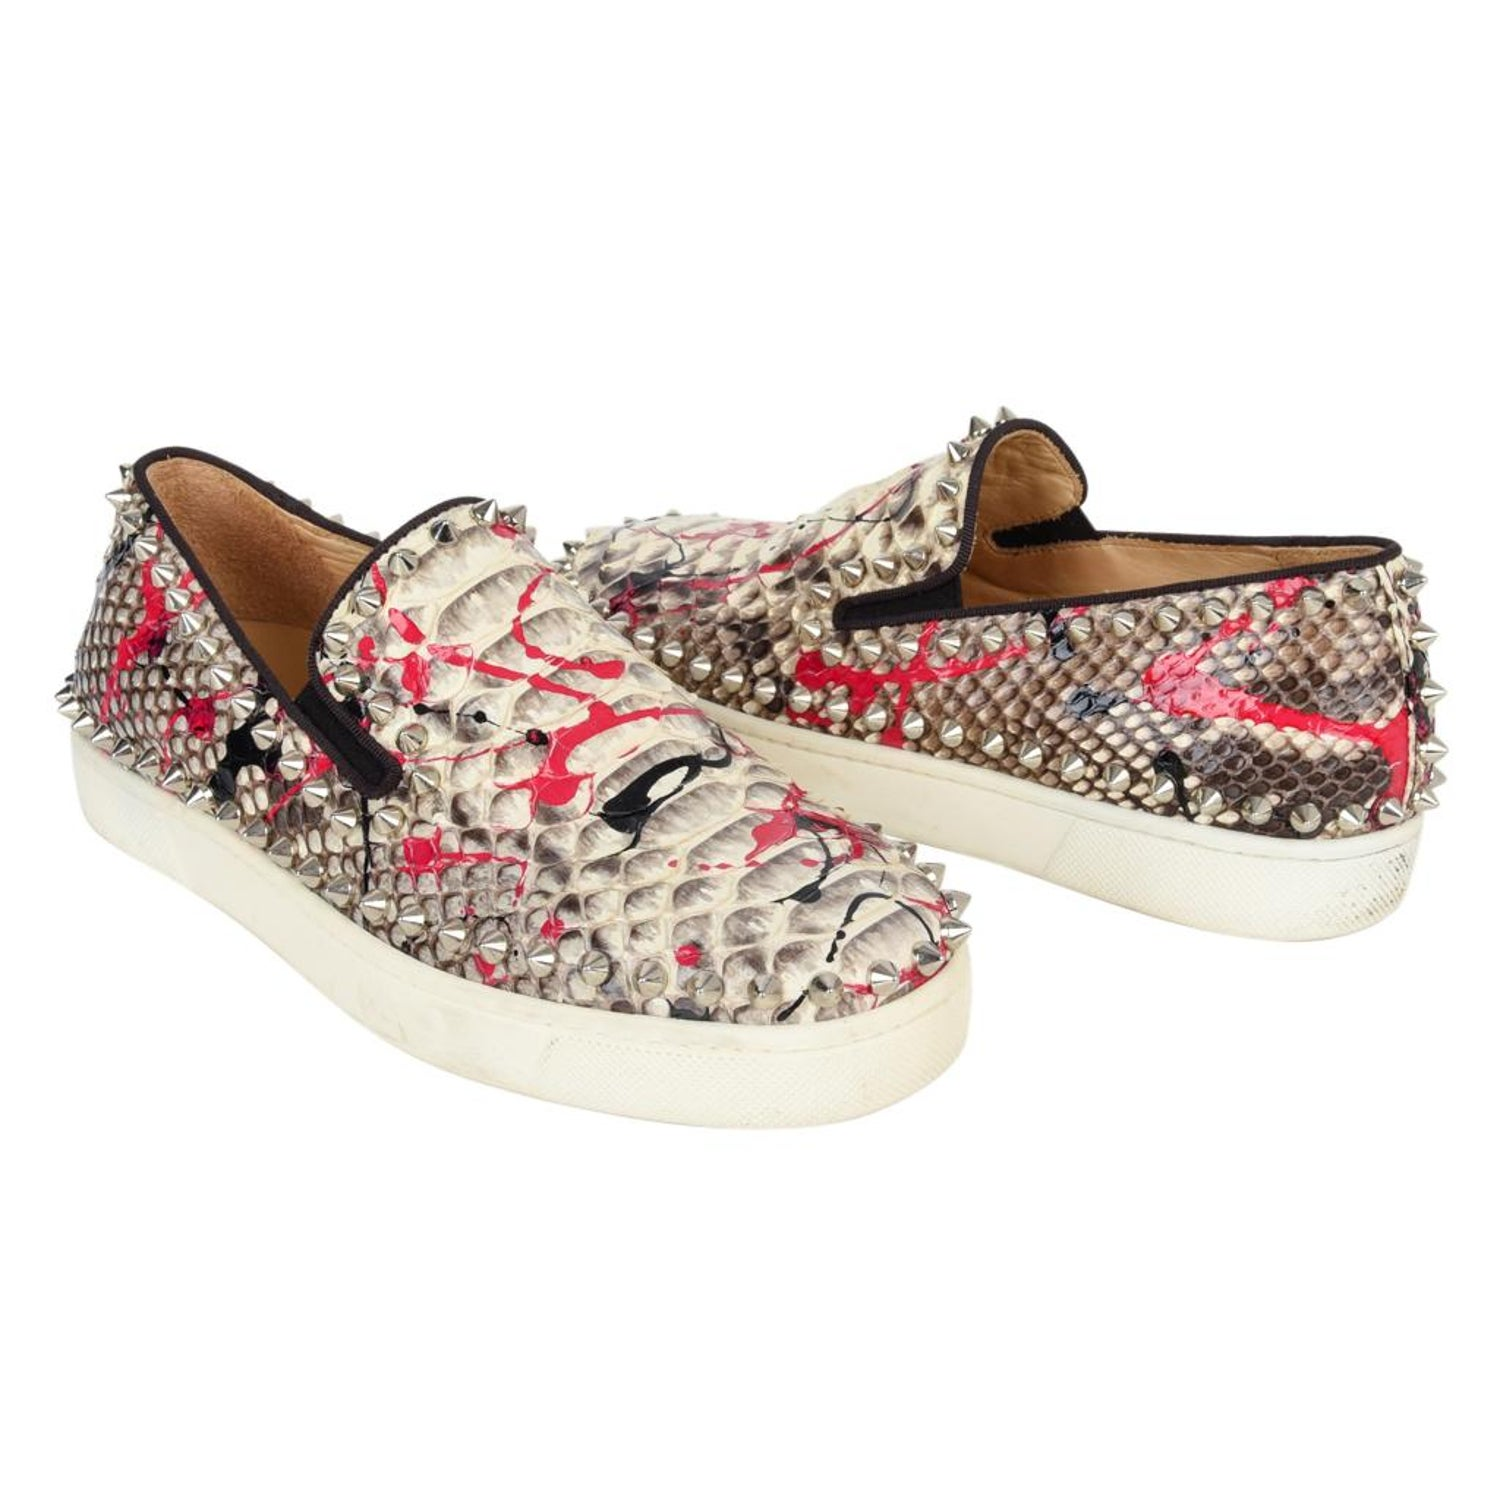 946293b4a524 Christian Louboutin Shoe Snakeskin Graffiti Pik Boat Sneakers 35   5 For  Sale at 1stdibs